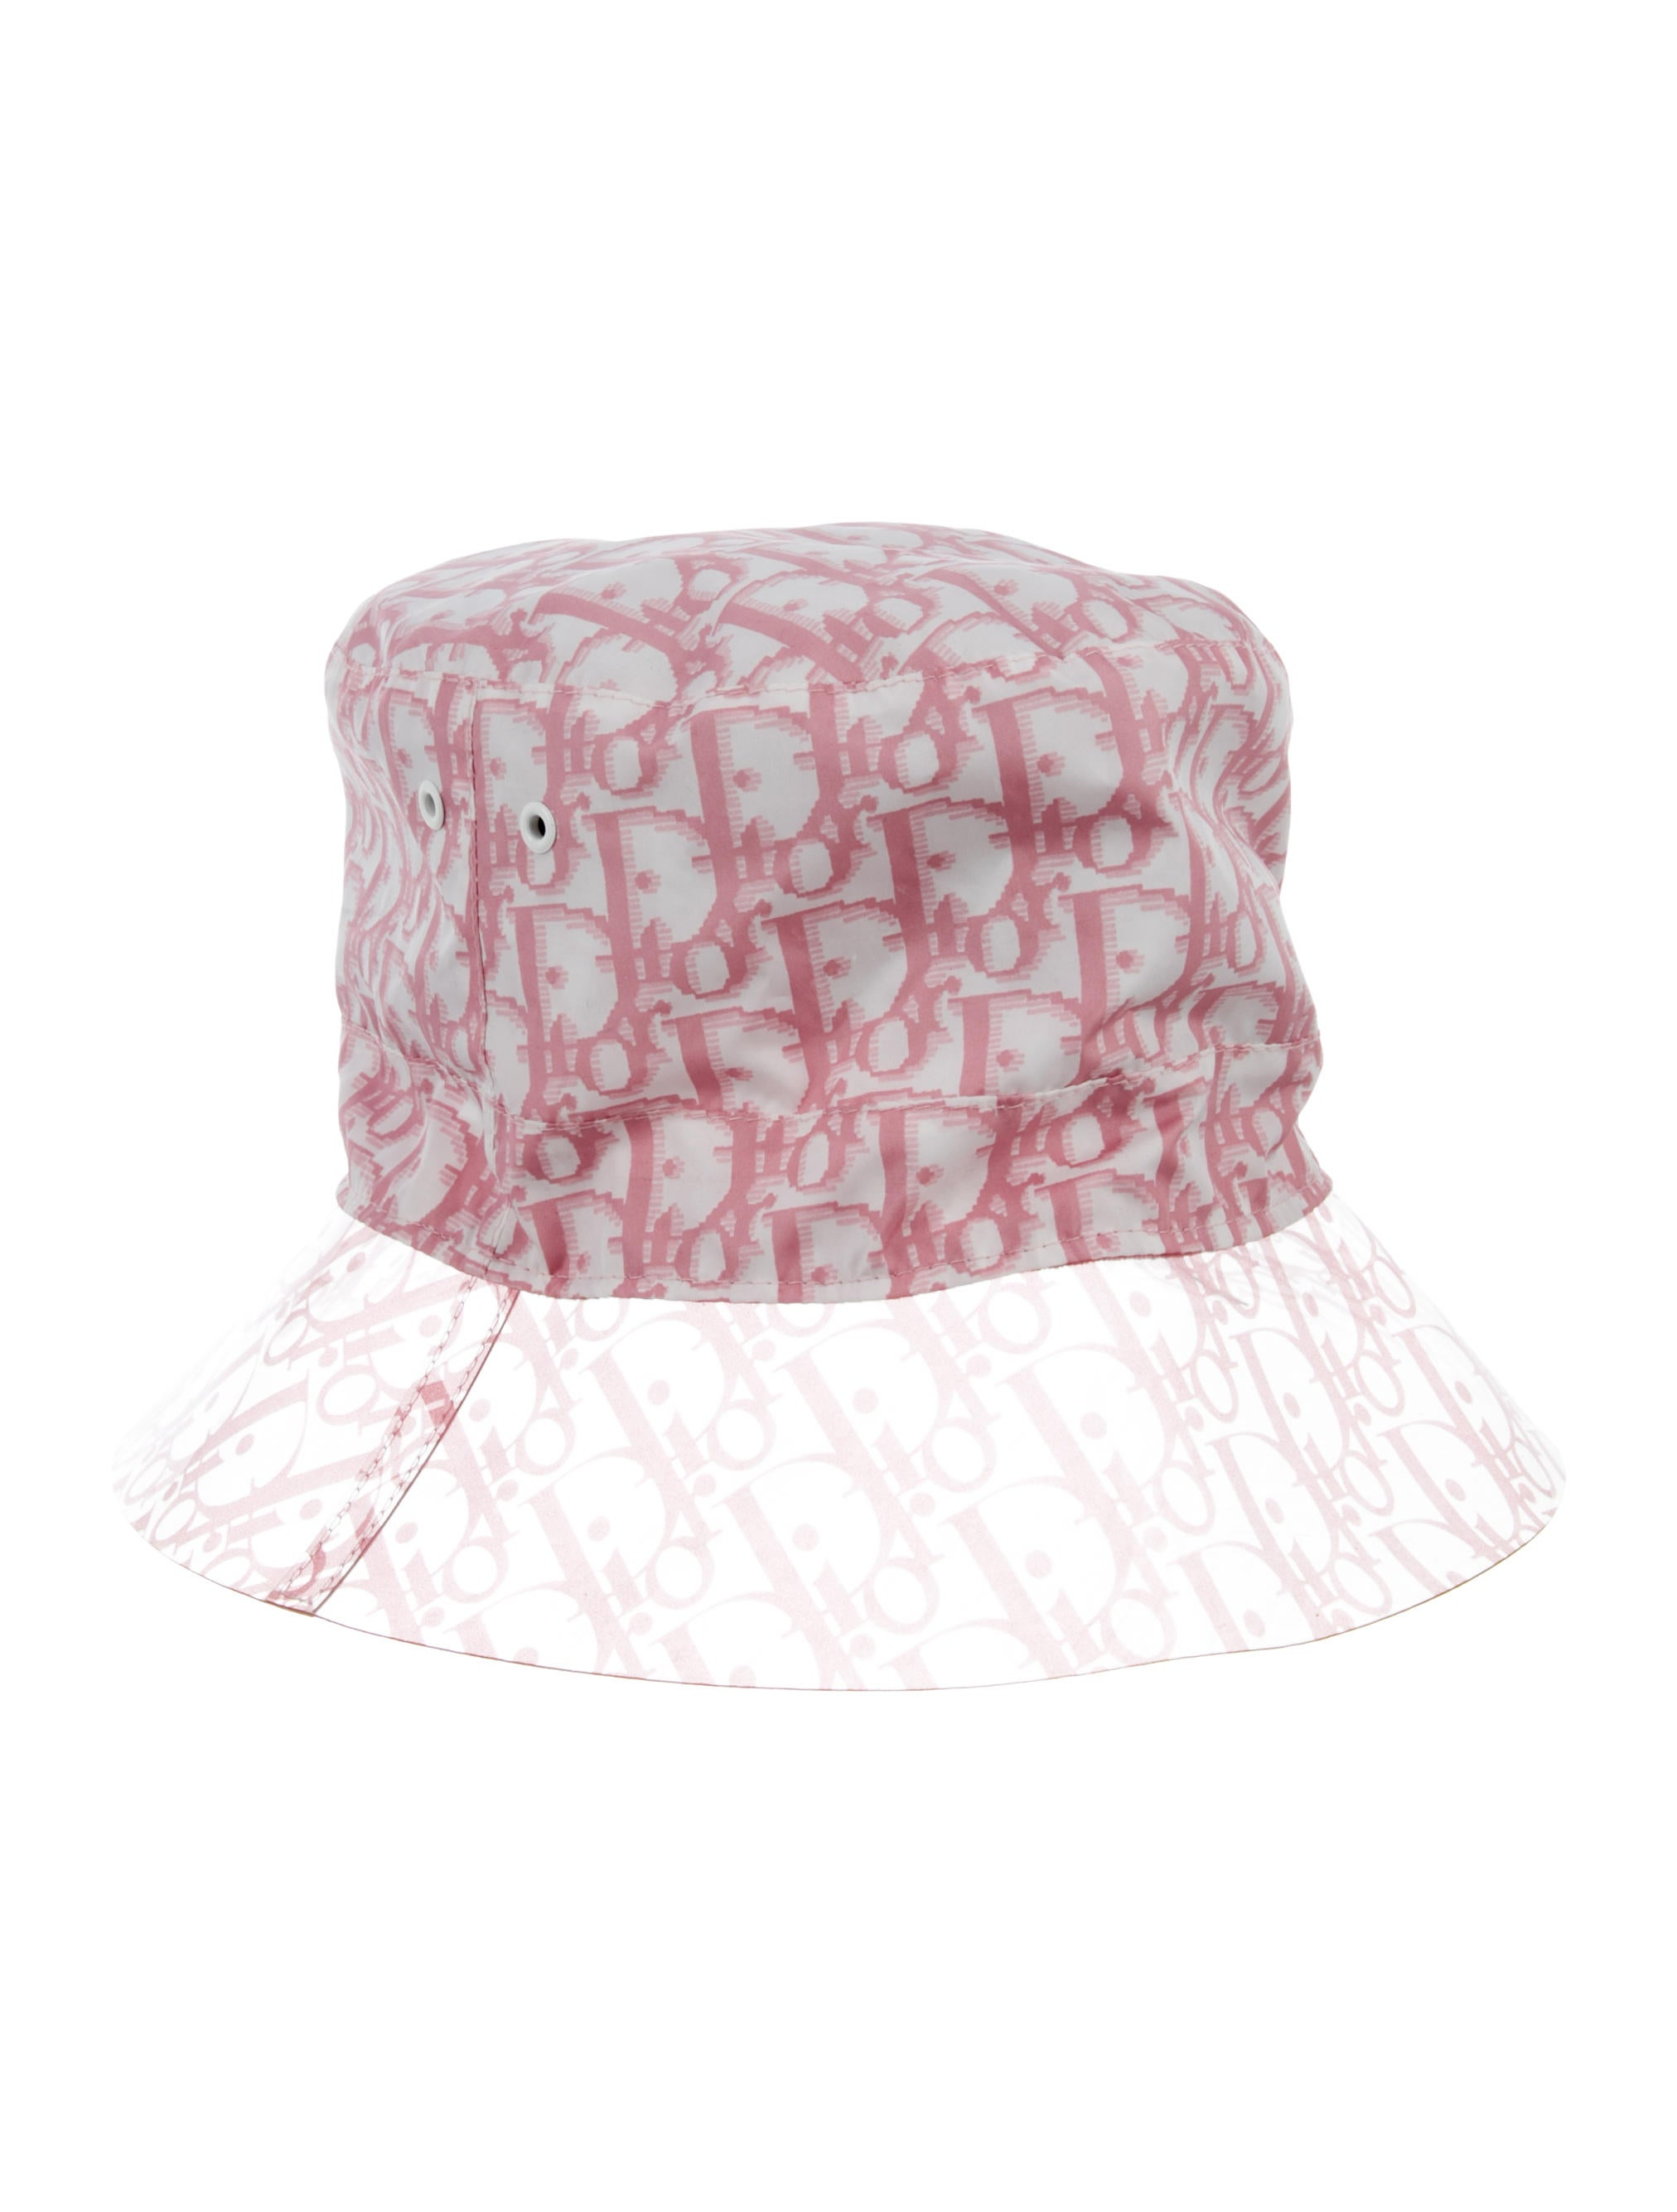 01d90adc884c4 Christian Dior Diorissimo Bucket Hat - Accessories - CHR81672